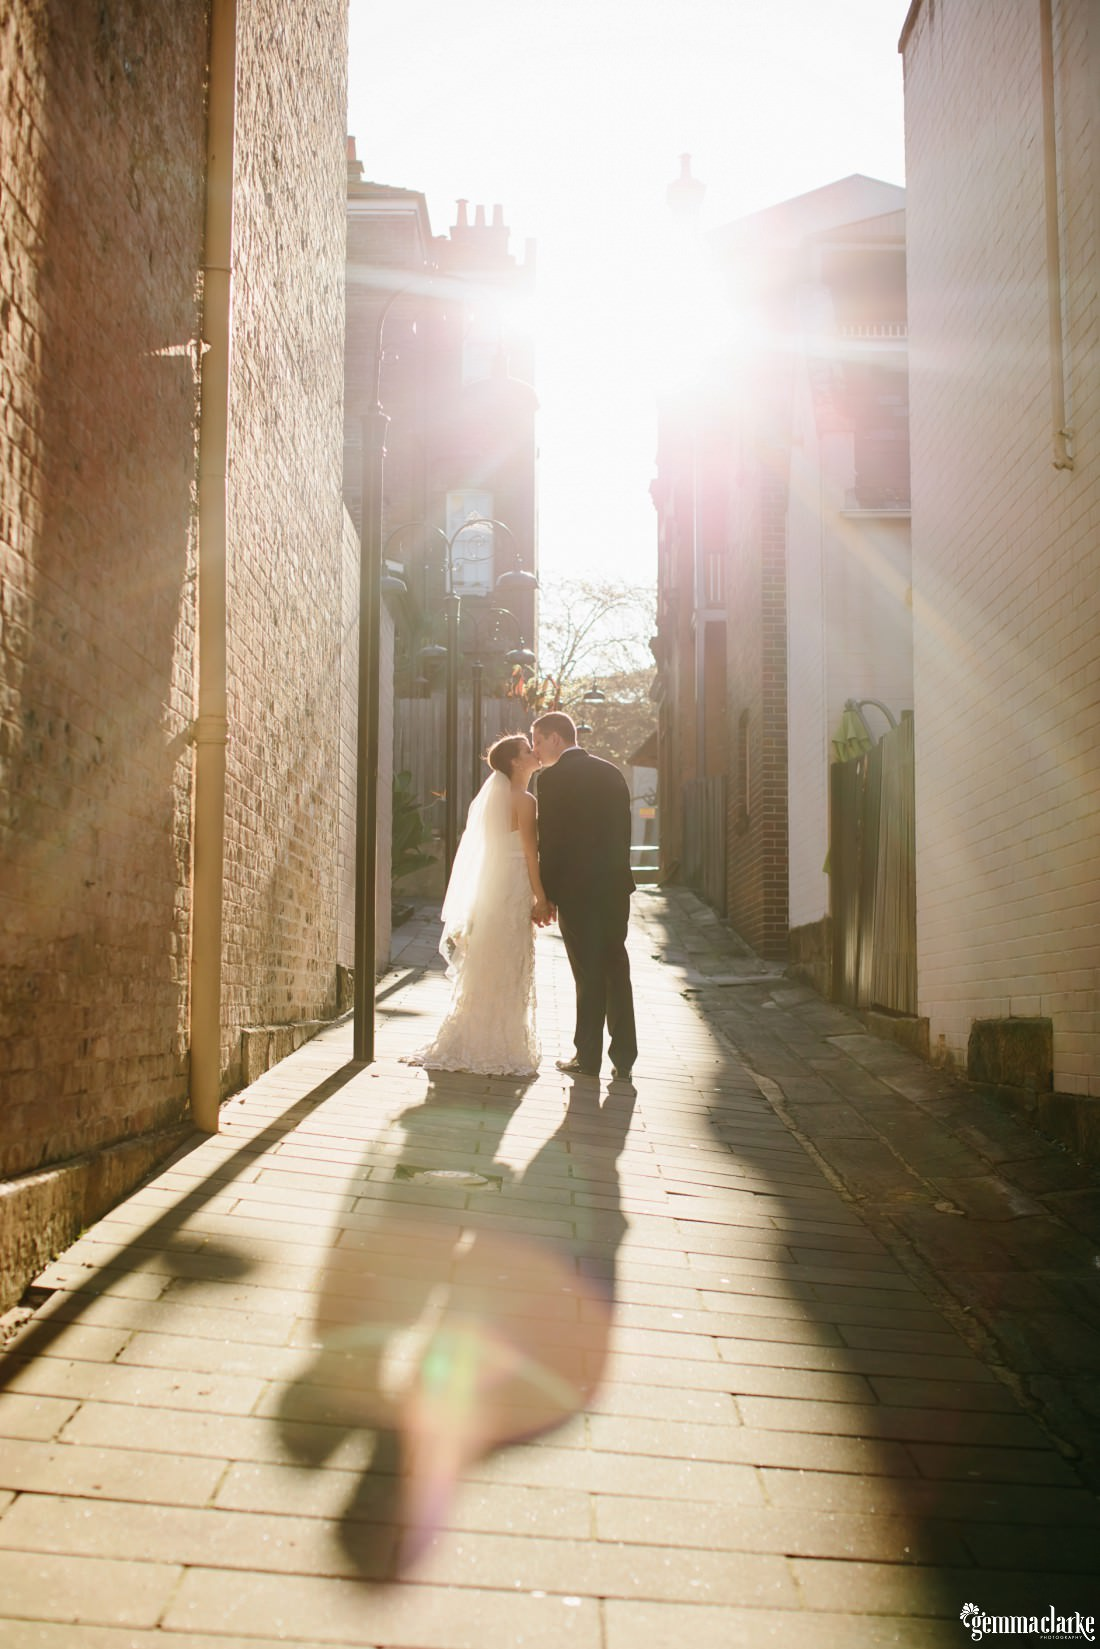 A bride and groom kissing in an alley way with the sun streaming in behind them